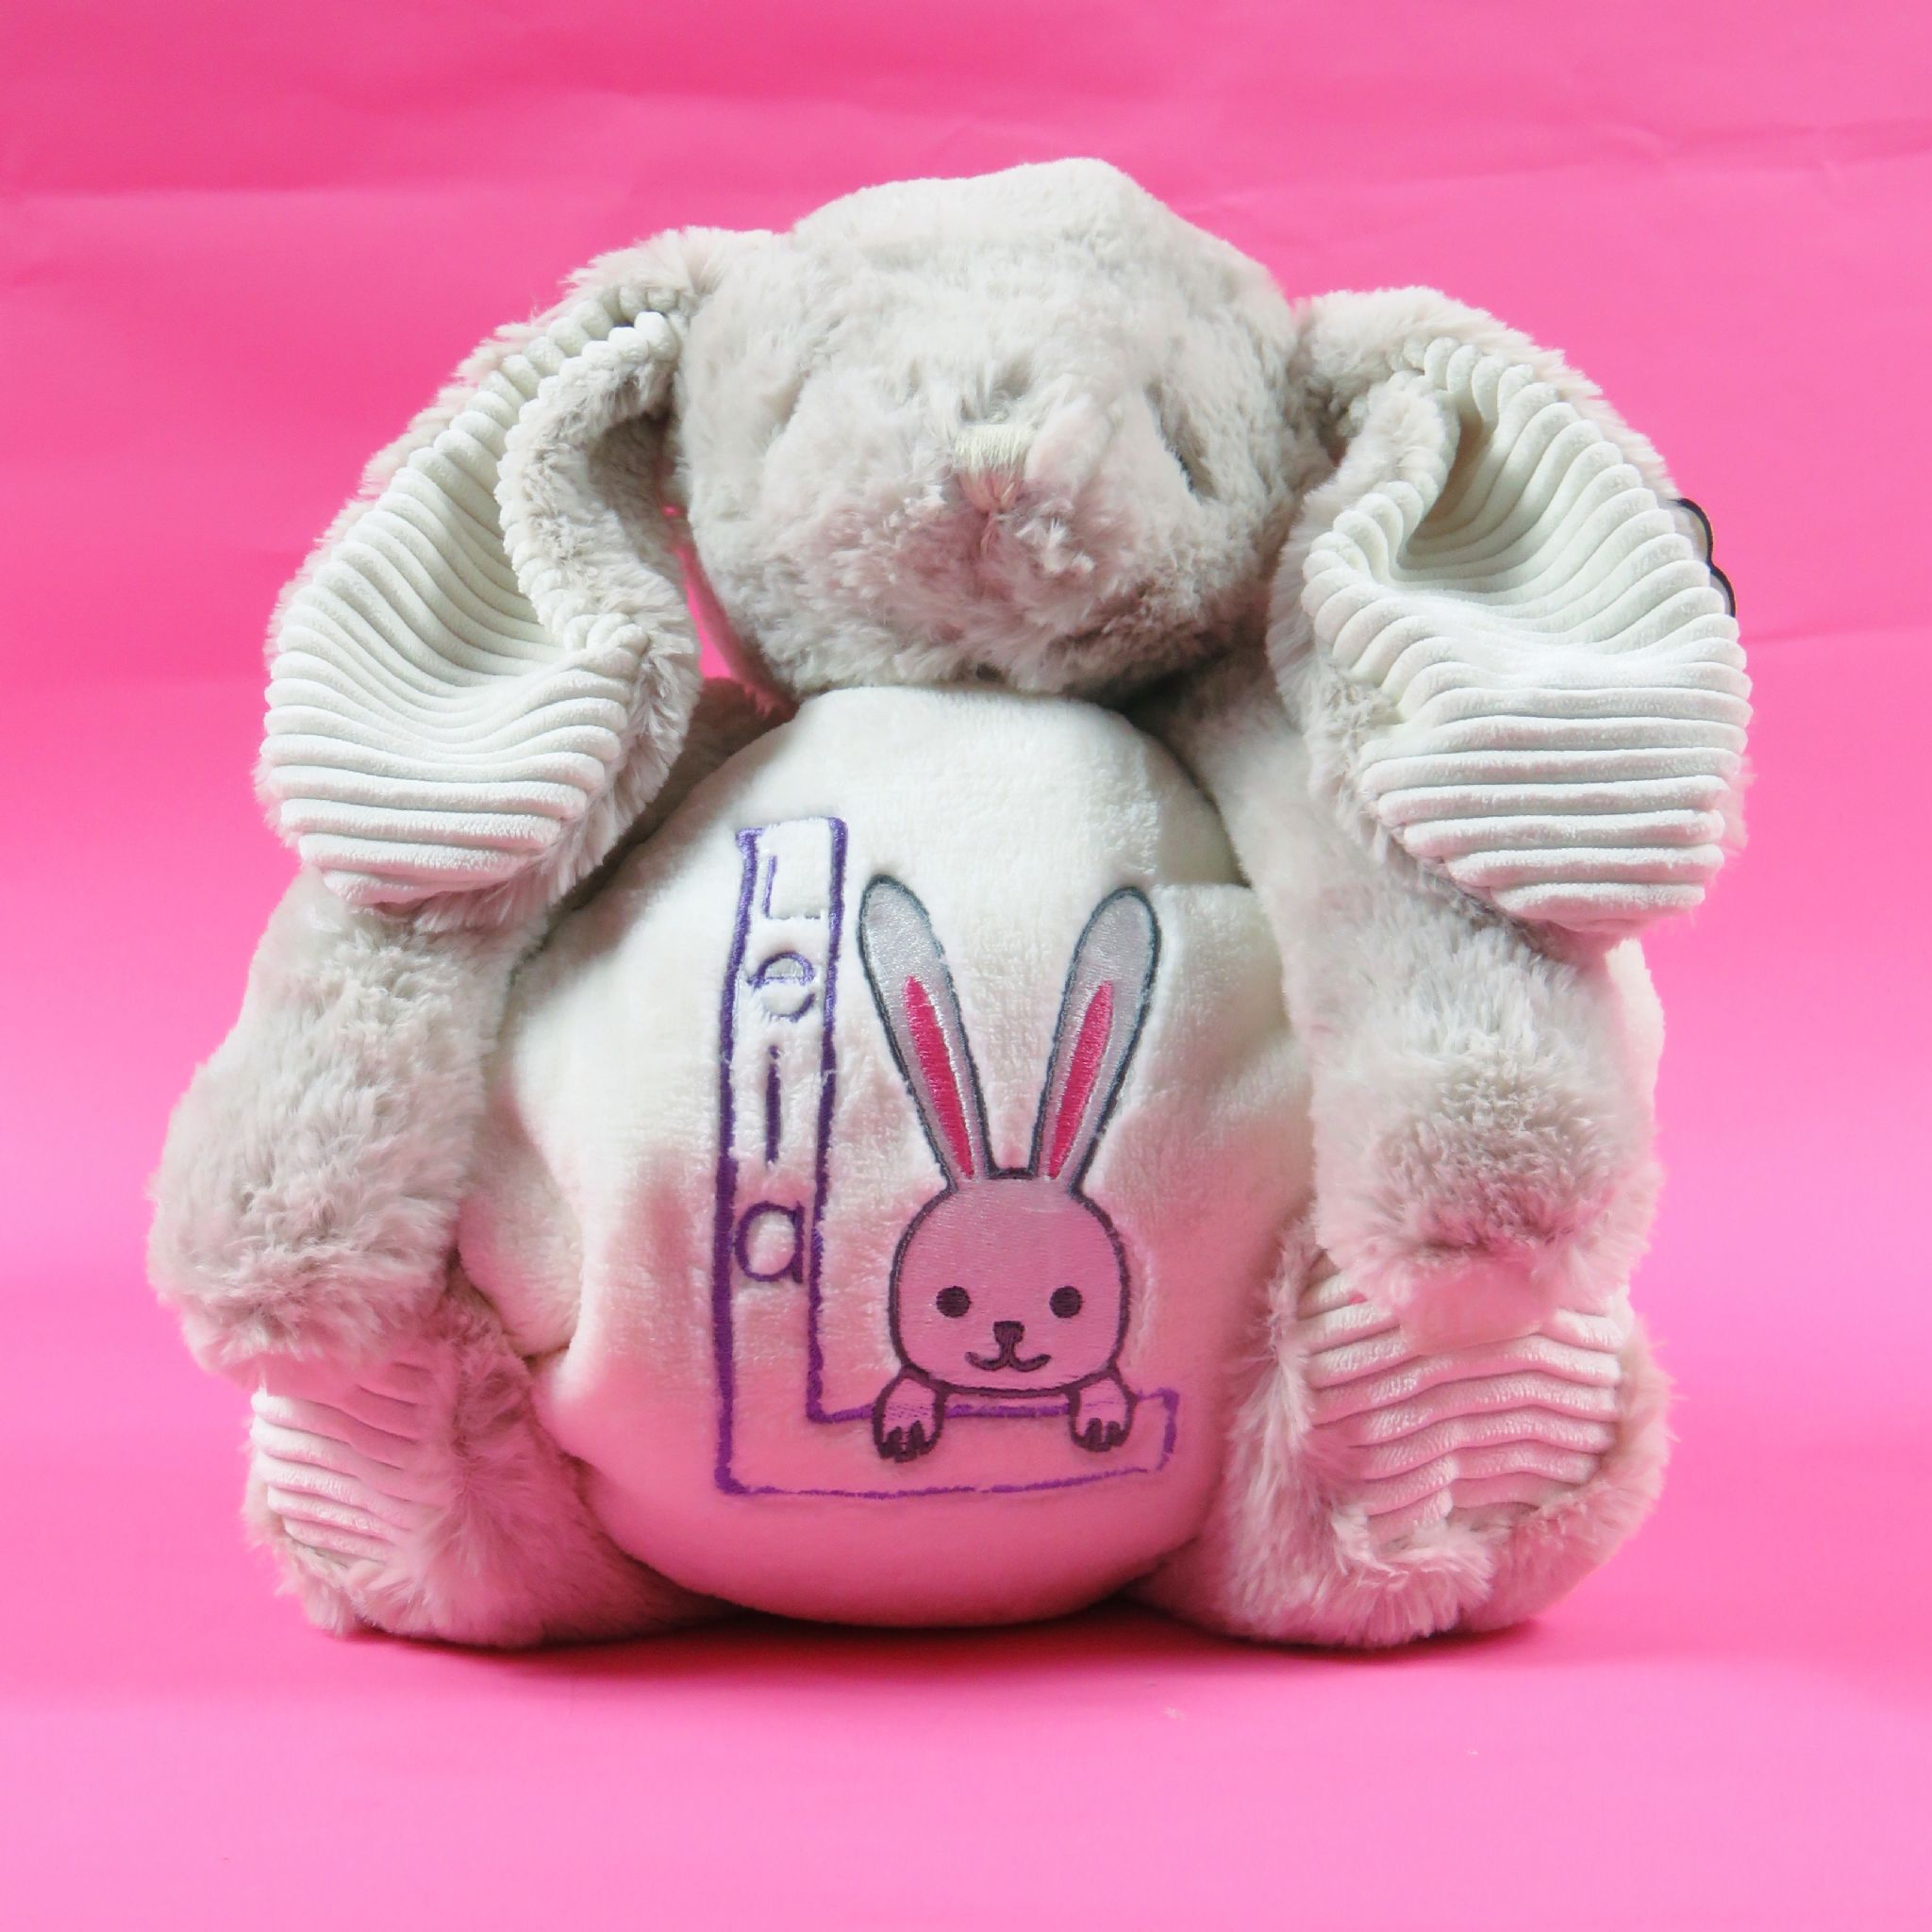 Personalised rabbit soft toy and blanket embroidered new born baby personalised rabbit soft toy and blanket embroidered new born baby gift bunny easter present persona negle Gallery